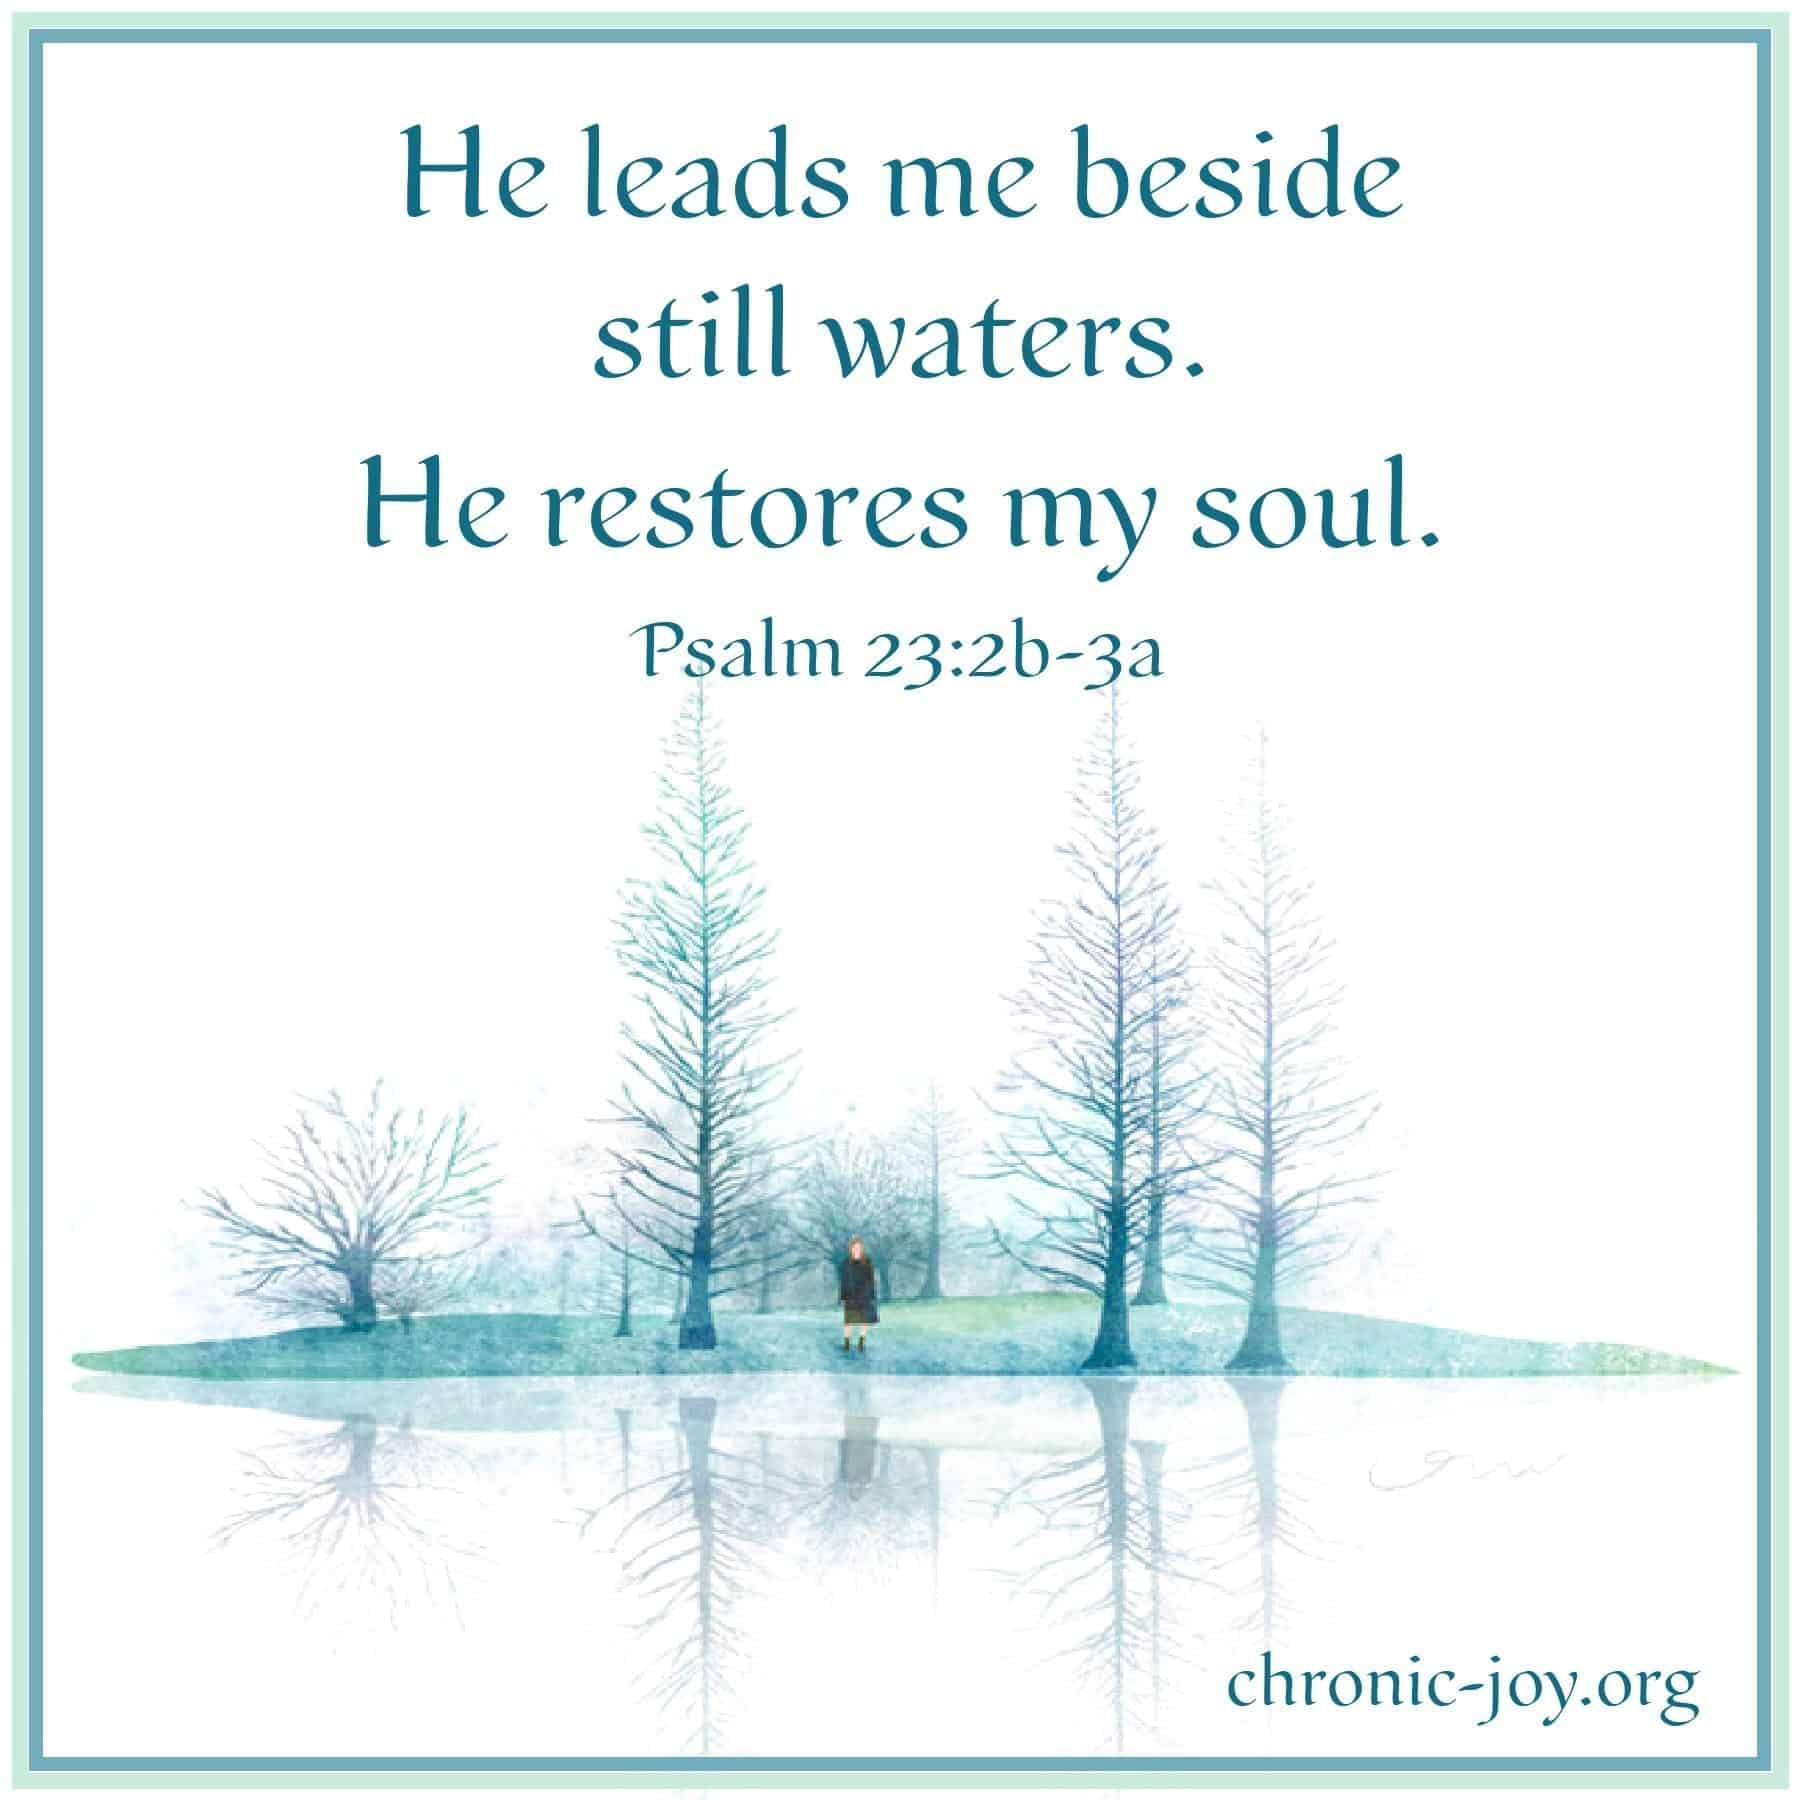 He leads me beside still waters. He restores my soul.